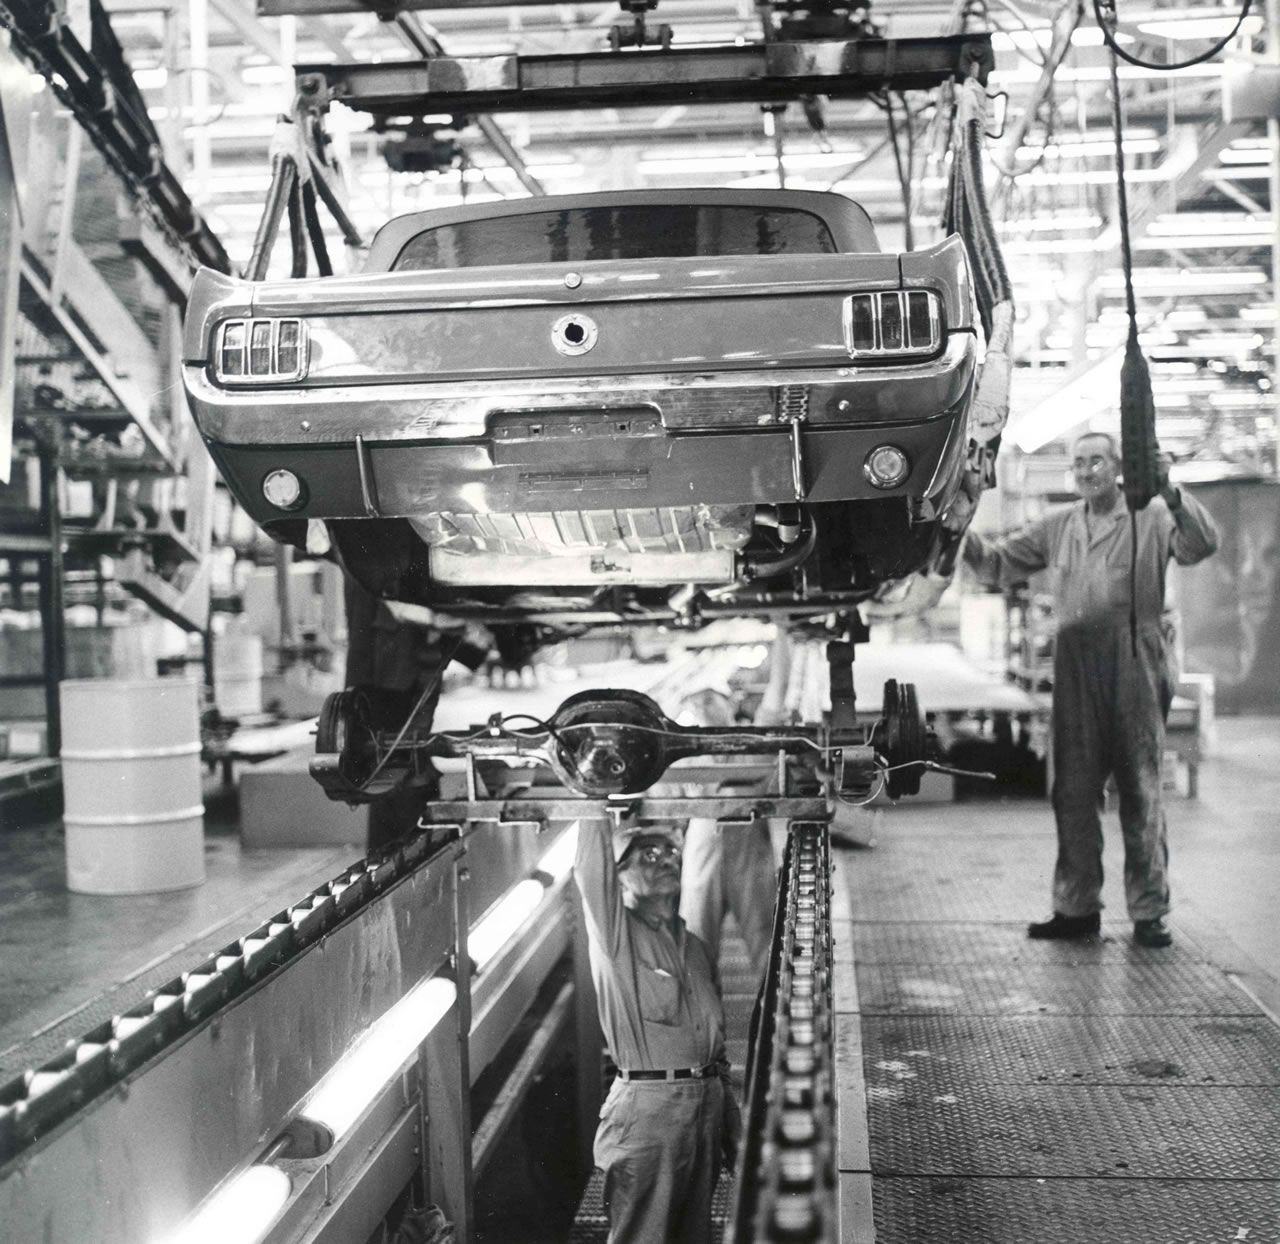 1964 Ford Mustang Assembly Line With Images Ford Mustang